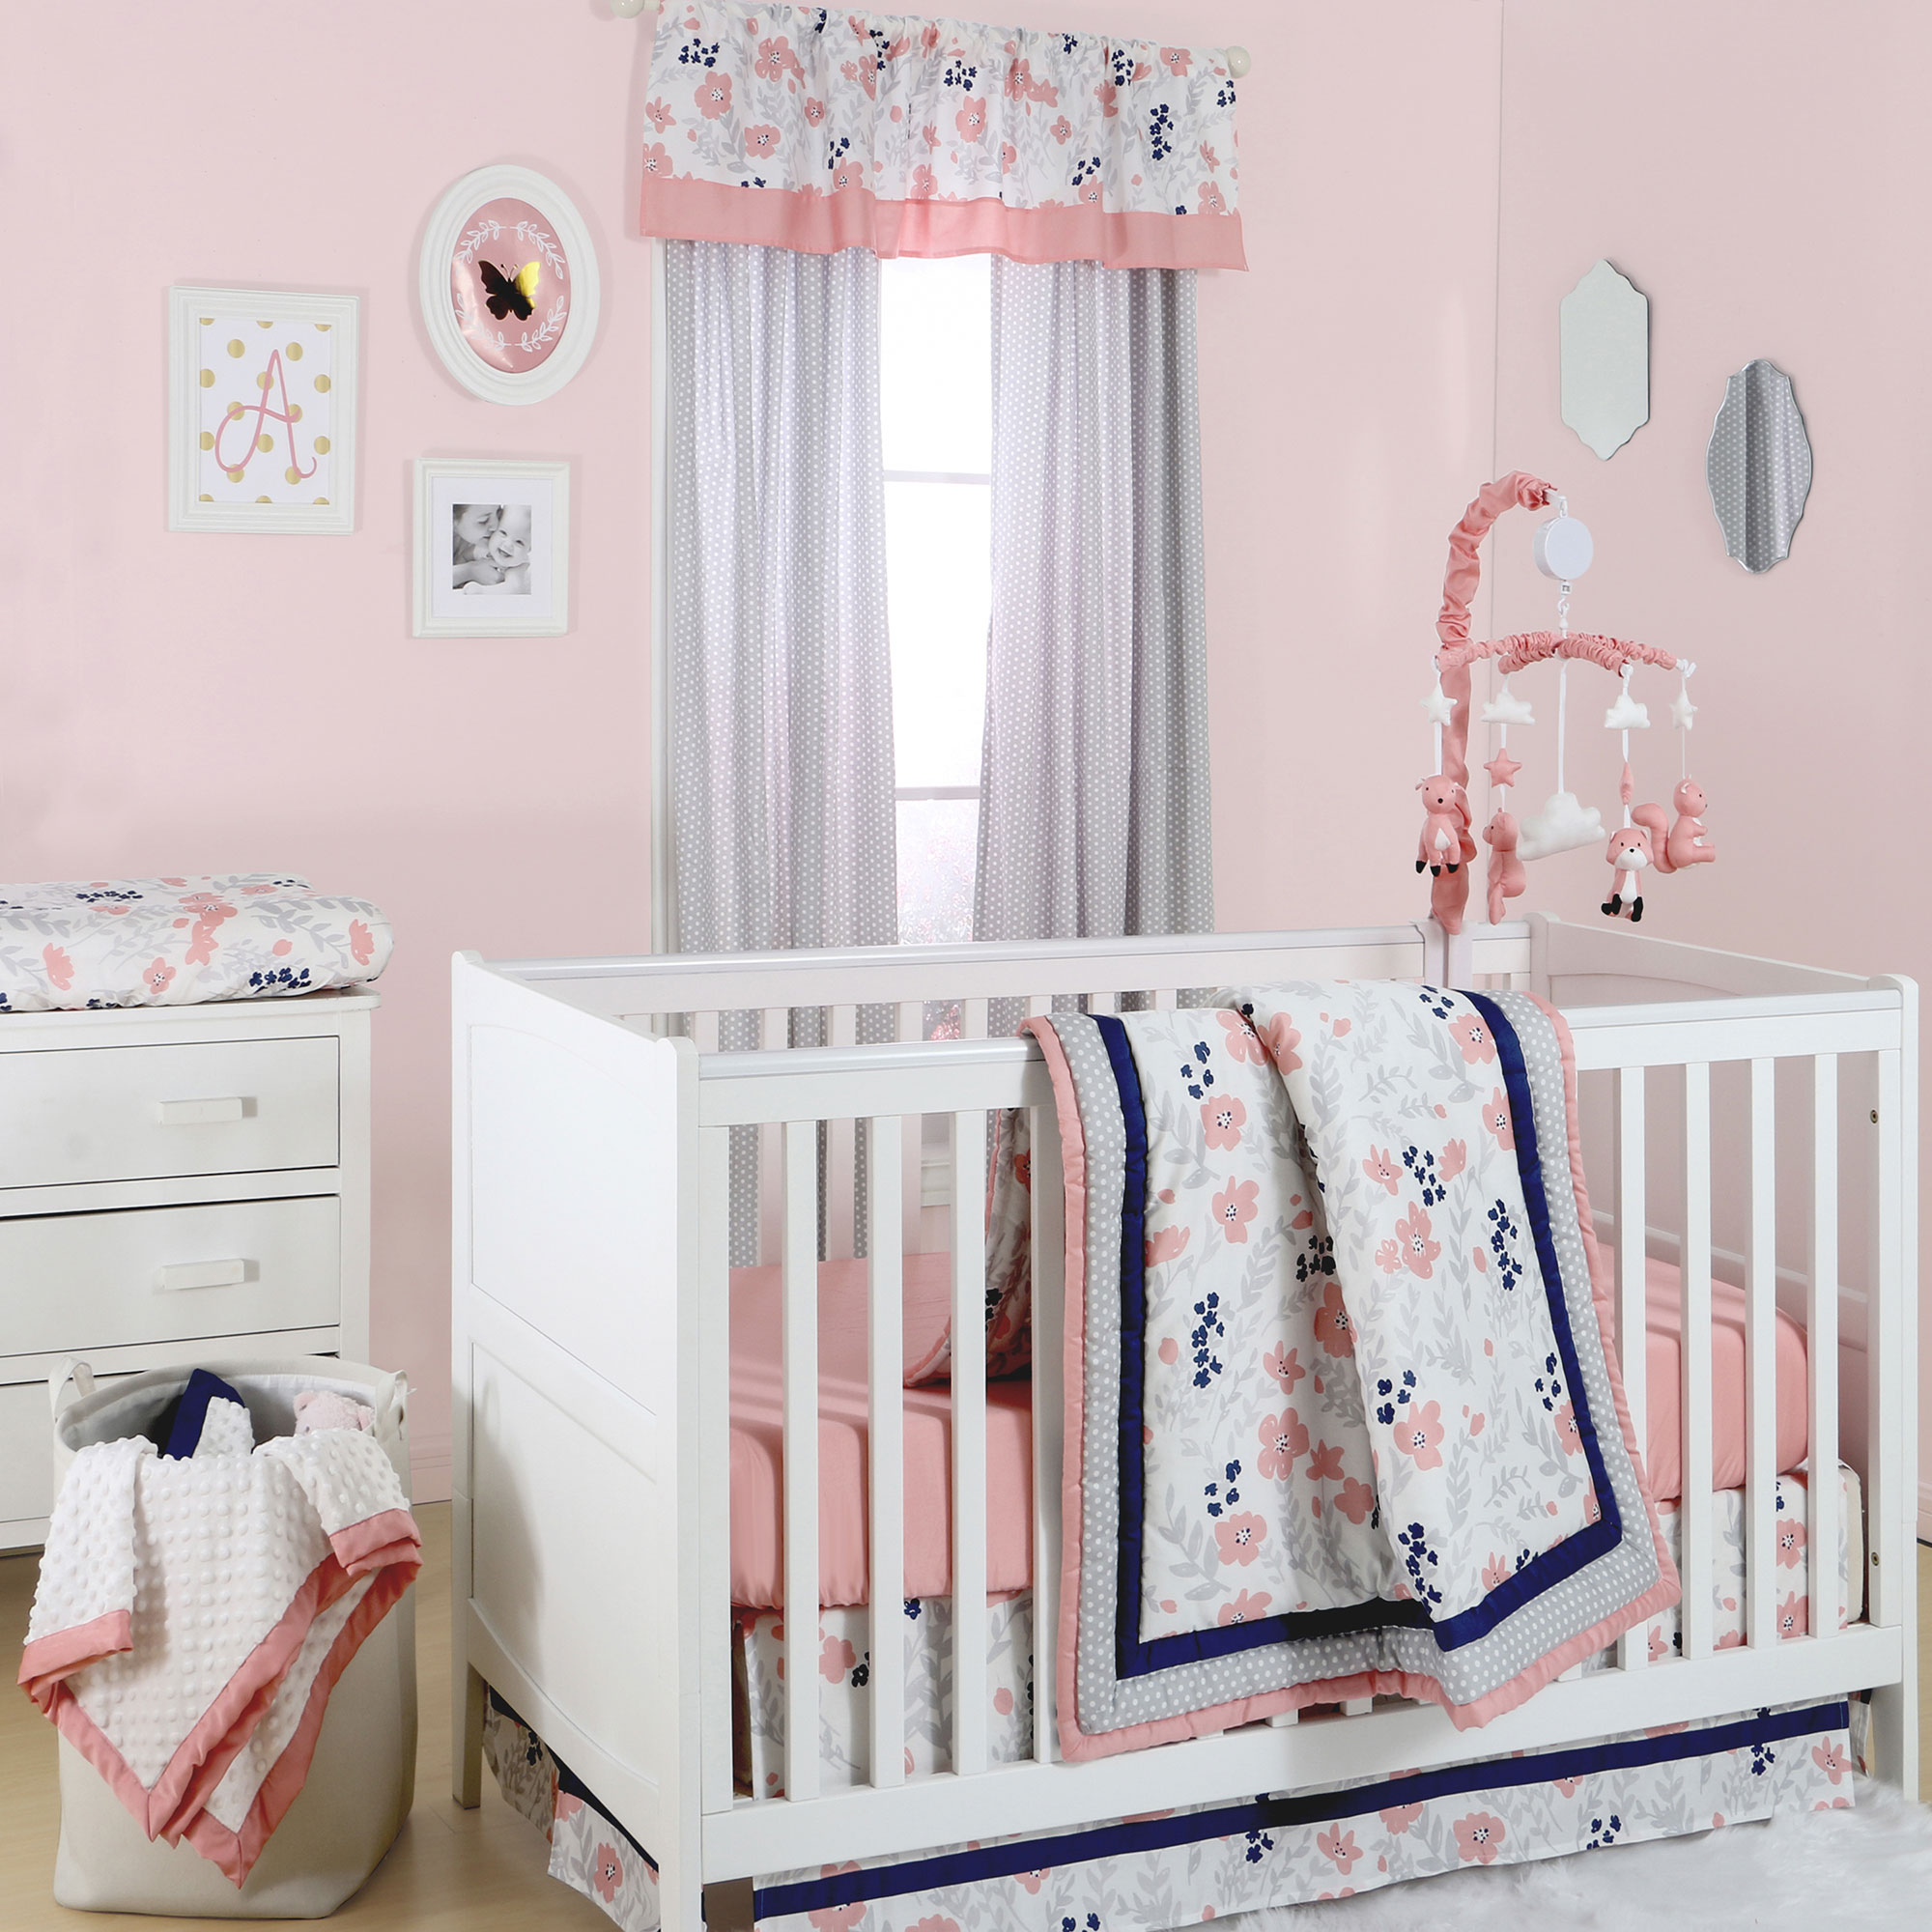 The Peanut Shell 3 Piece Baby Crib Bedding Set Coral Gray And Navy Blue Floral Designs 100 Cotton Quilt Crib Skirt And Sheet Walmart Com Walmart Com